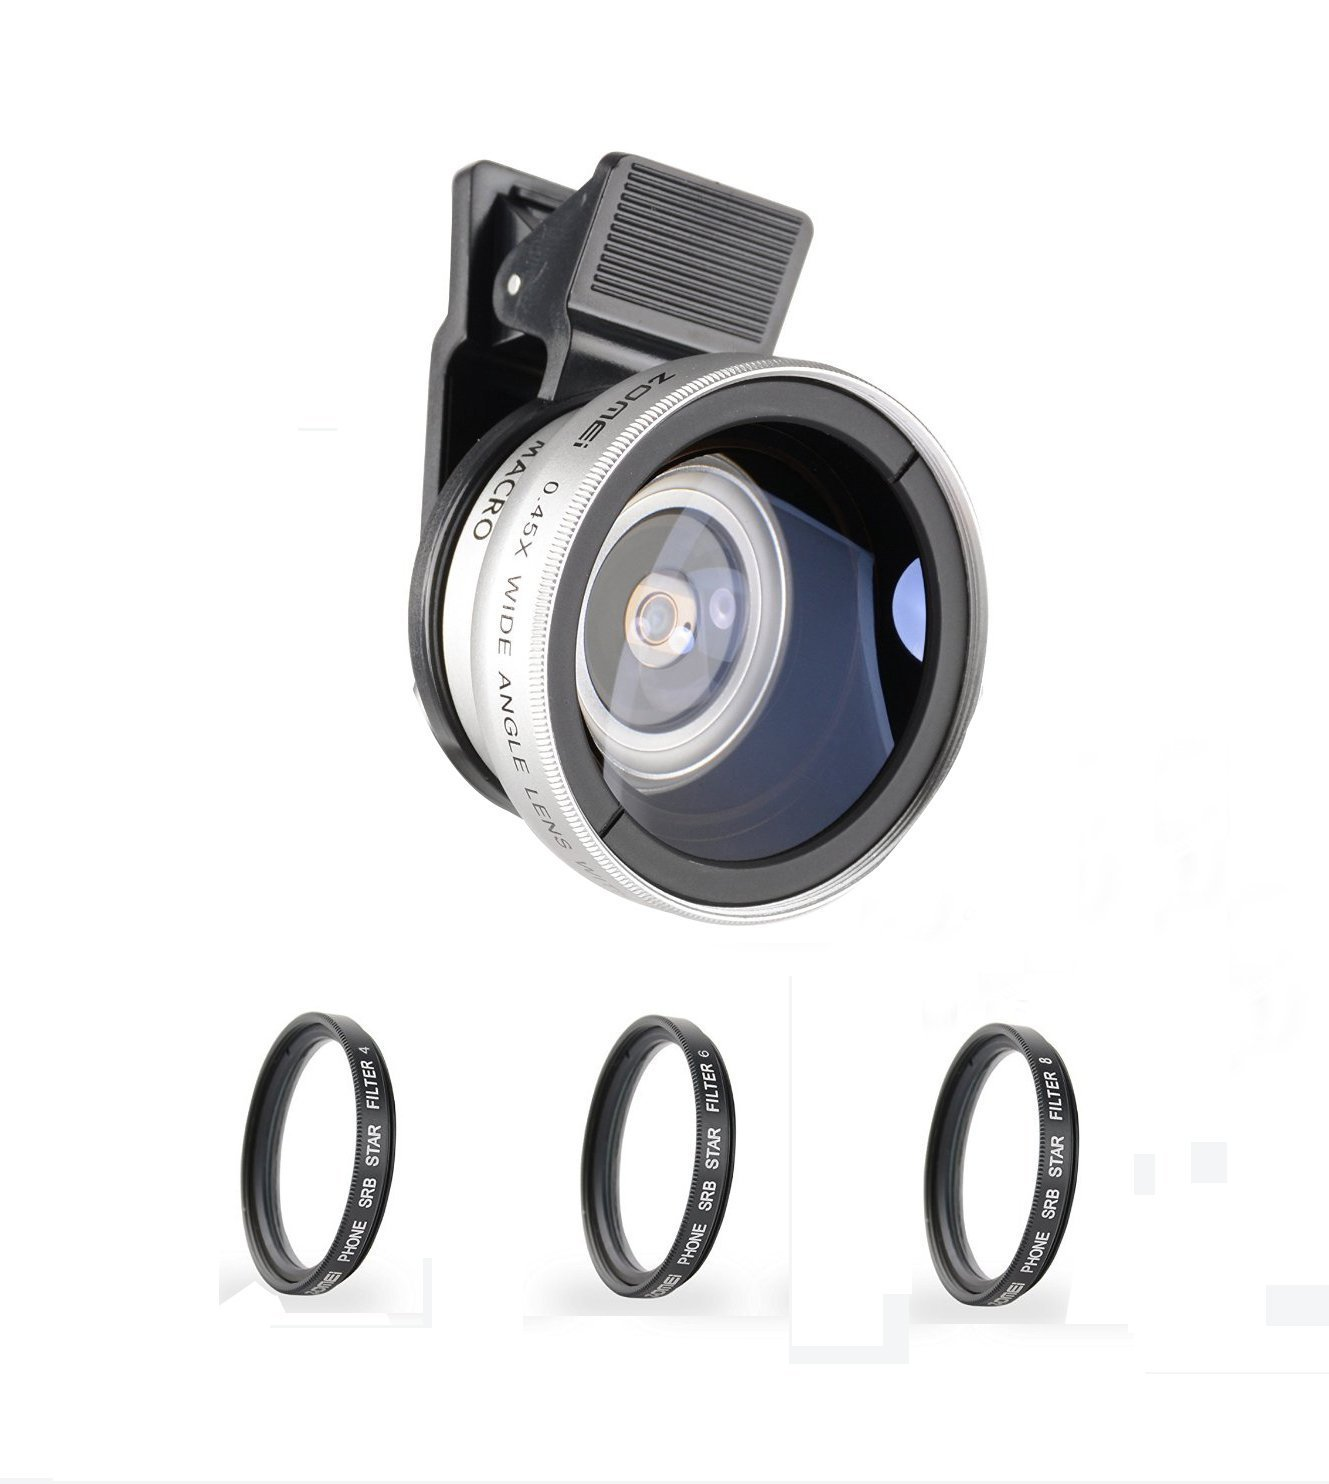 ZoMei iPhone Lens 5 in 1 Cell Phone Camera Lens Kit 140 Degree Wide Angle Lens + 10X Macro Lens + Star Filter with 37mm Clip for iPhone Samsung Android Smartphones(Silver)